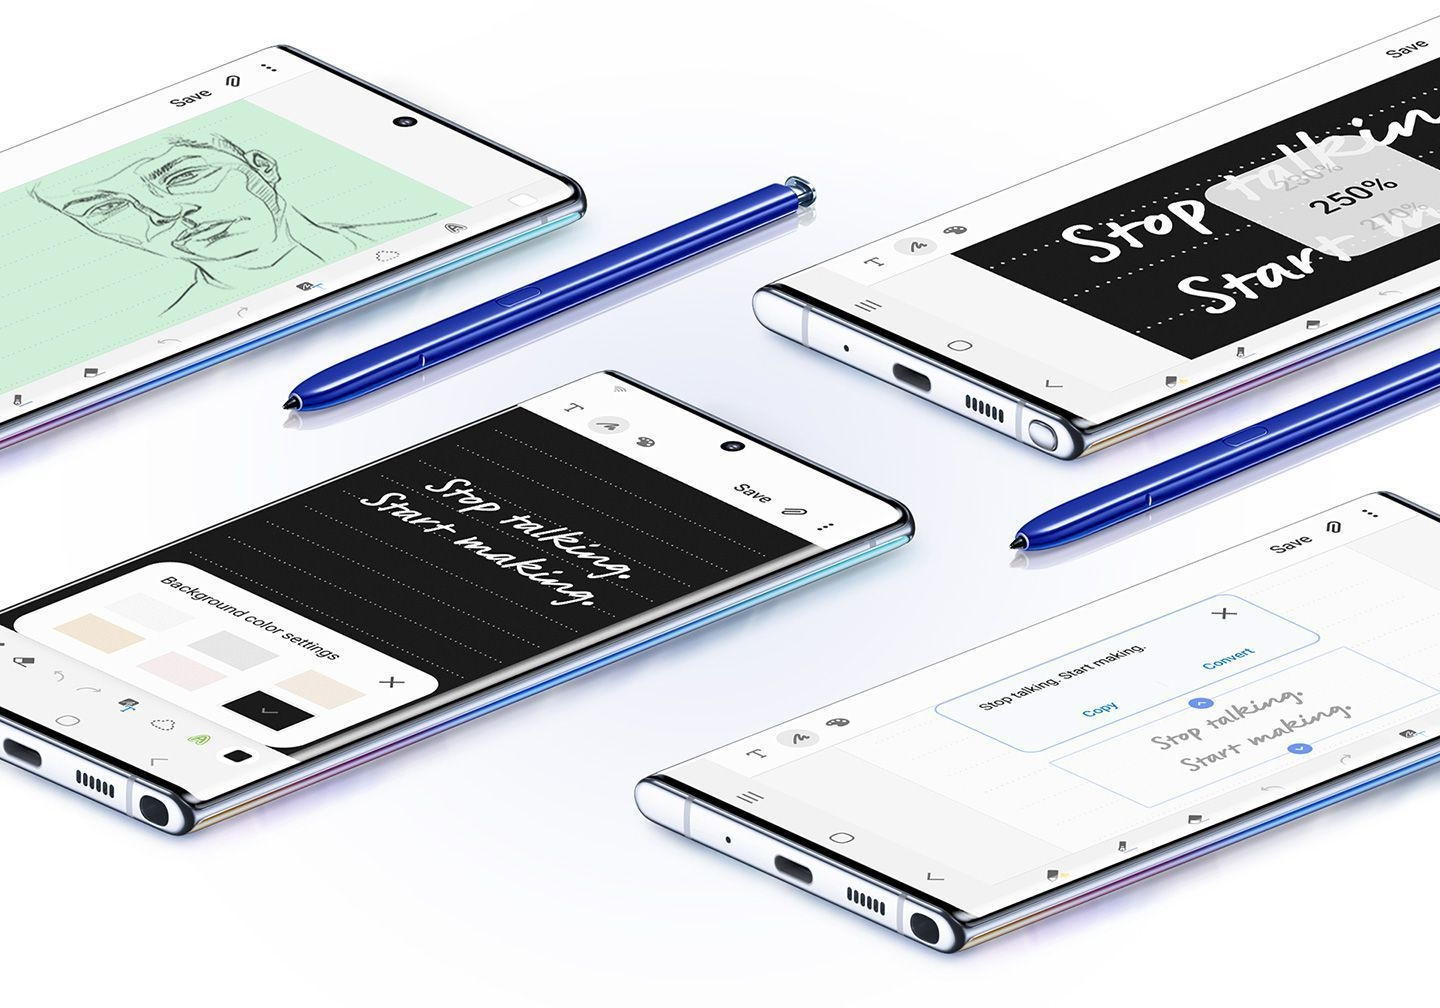 Four Galaxy Note10 plus phones seen laying face up with a variety of Samsung Notes uses onscreen, and two blue S Pens. One screen shows a sketch of a face, another shows Text Export, the next shows a note with the zoom GUI overlaid on top, and the last phone shows writing with the background color settings menu